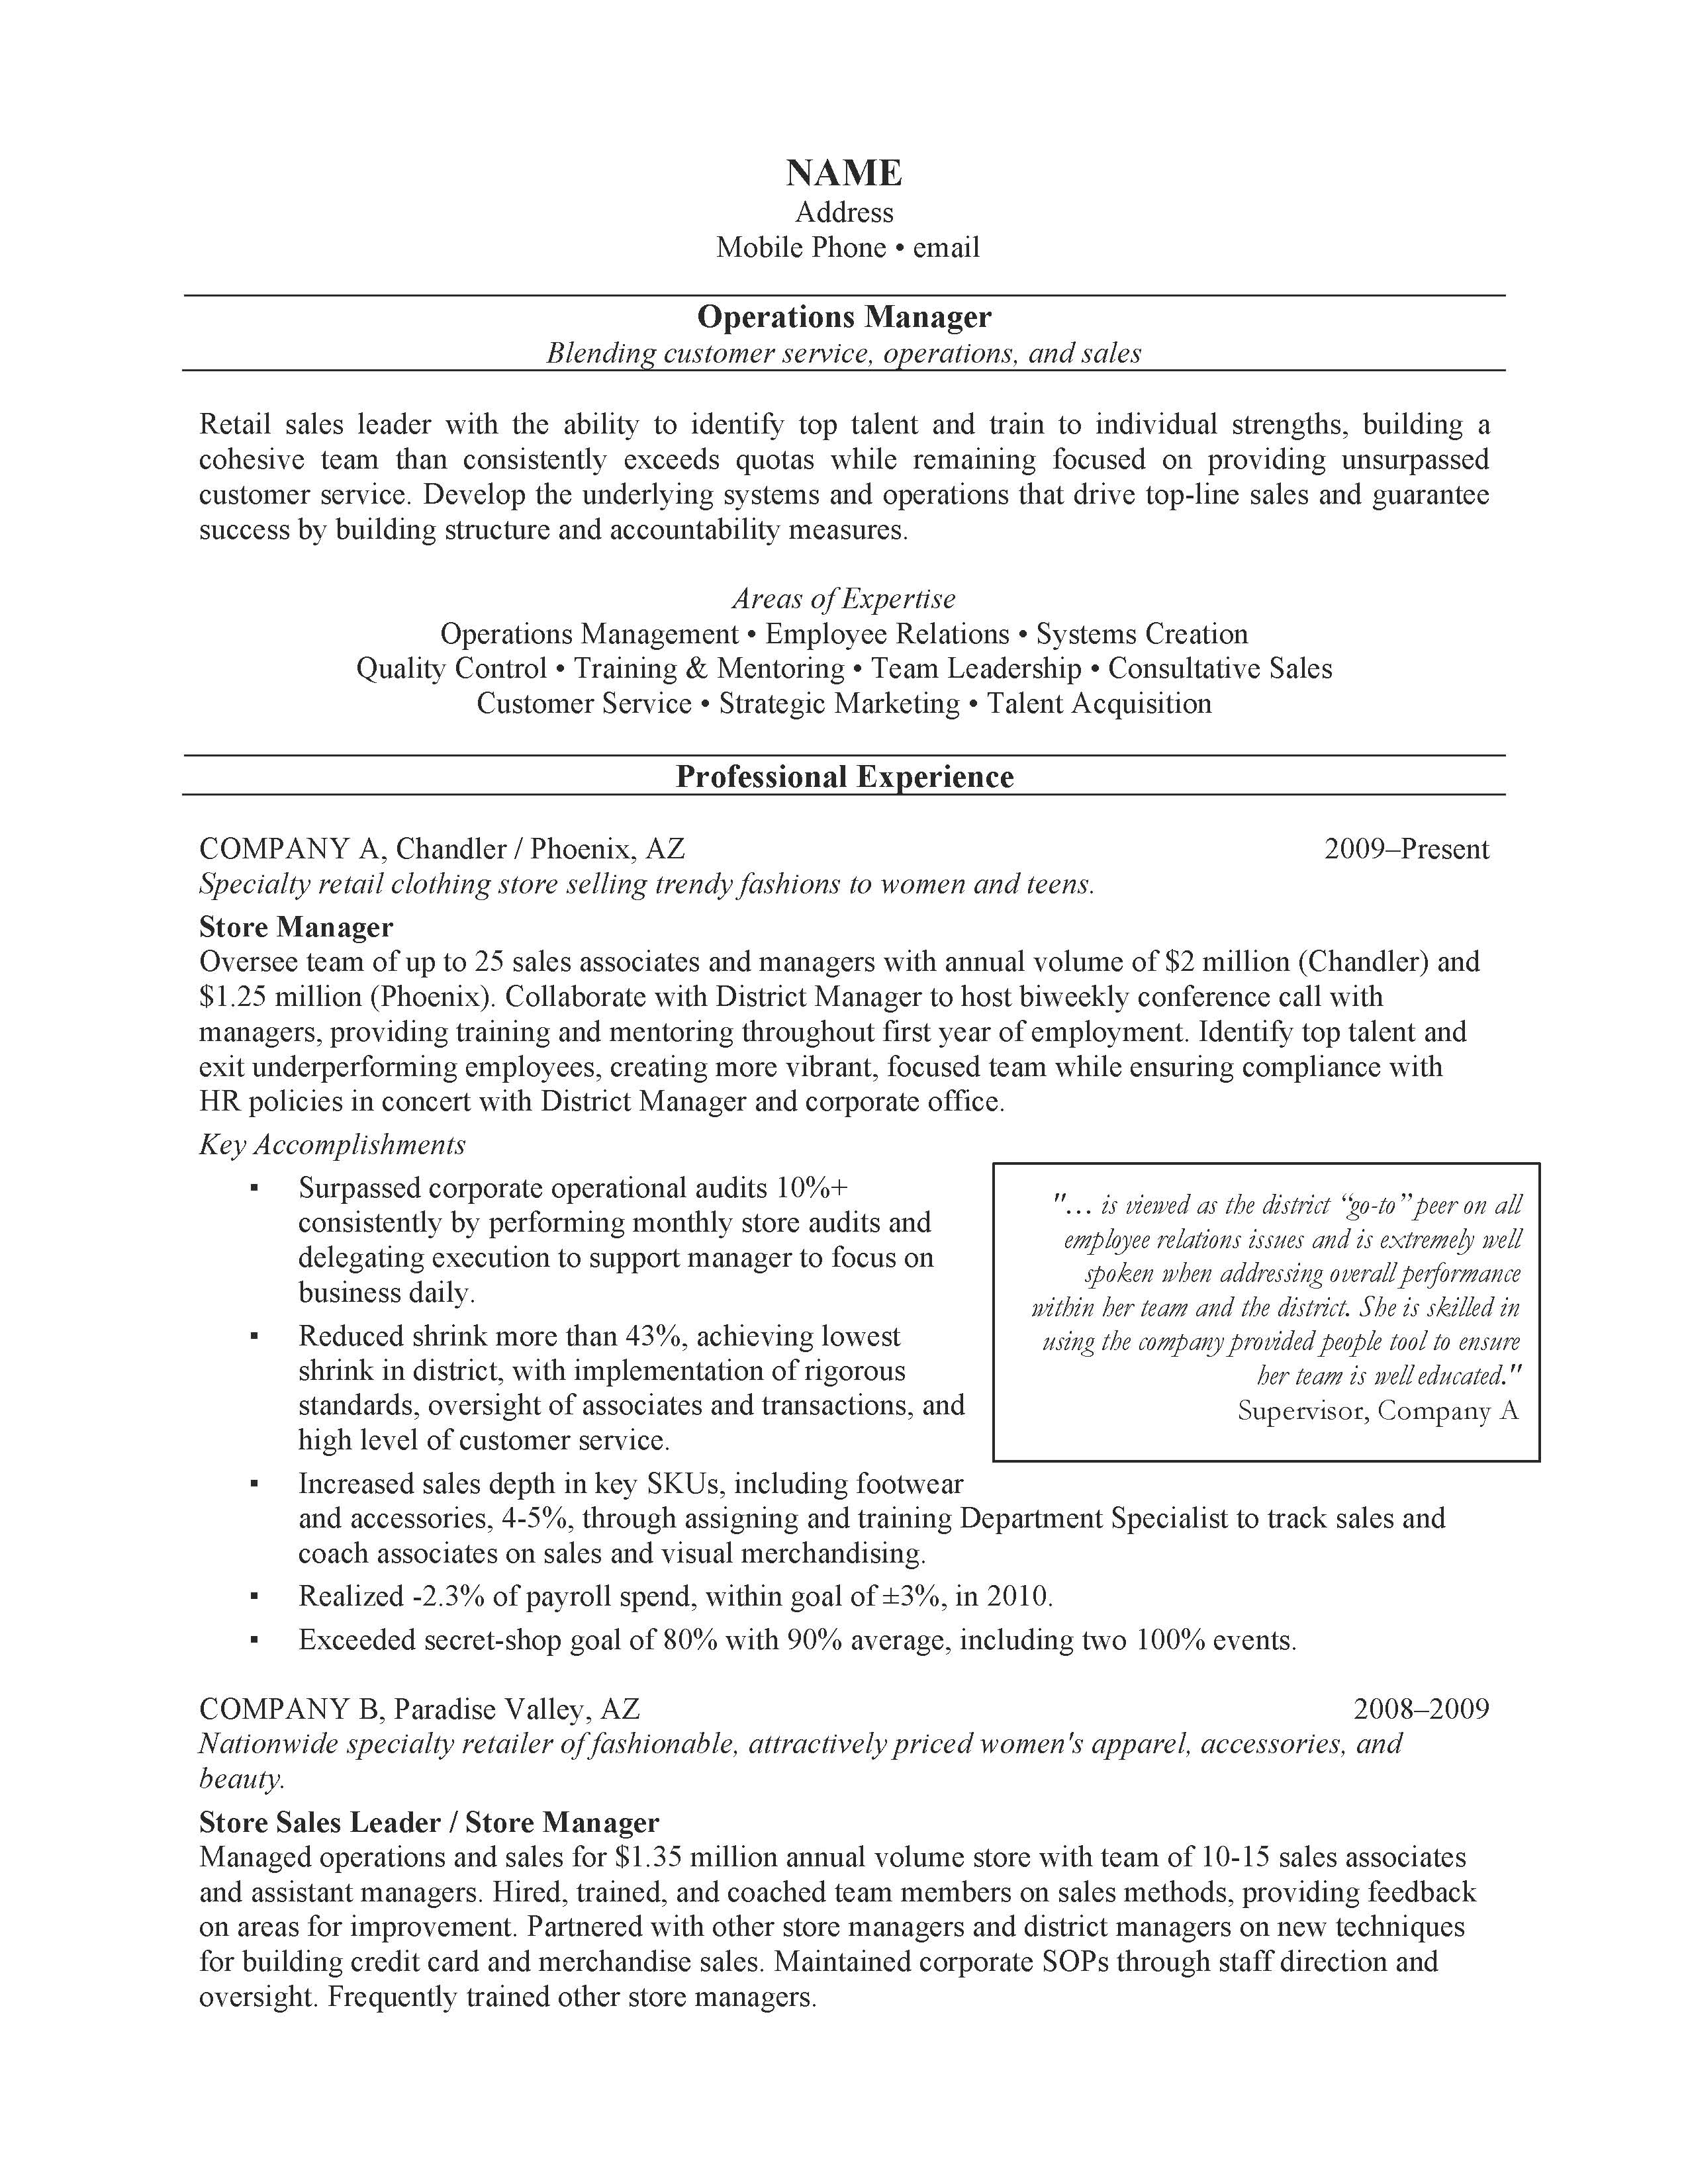 Resume Accomplishments Sample Accomplishments Are Key To Not Only A Great Resume But The